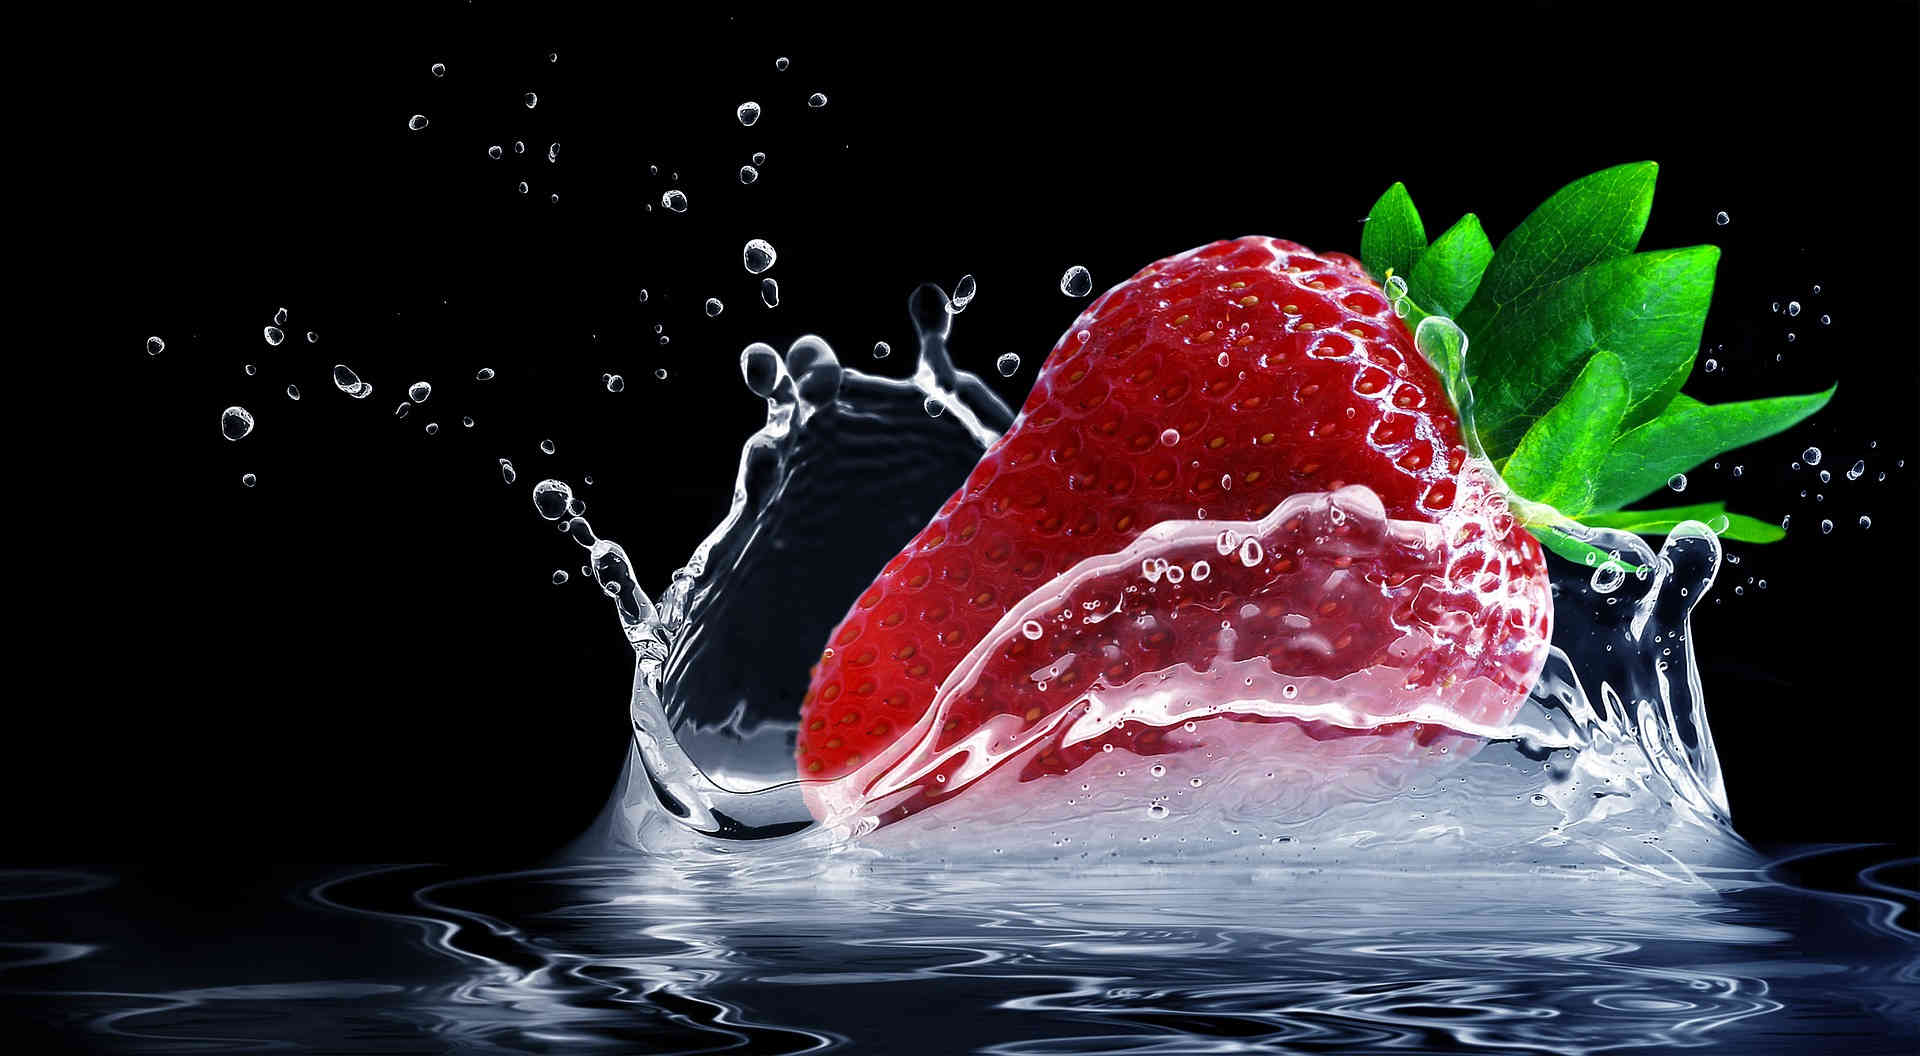 strawberry-splash-190308-72